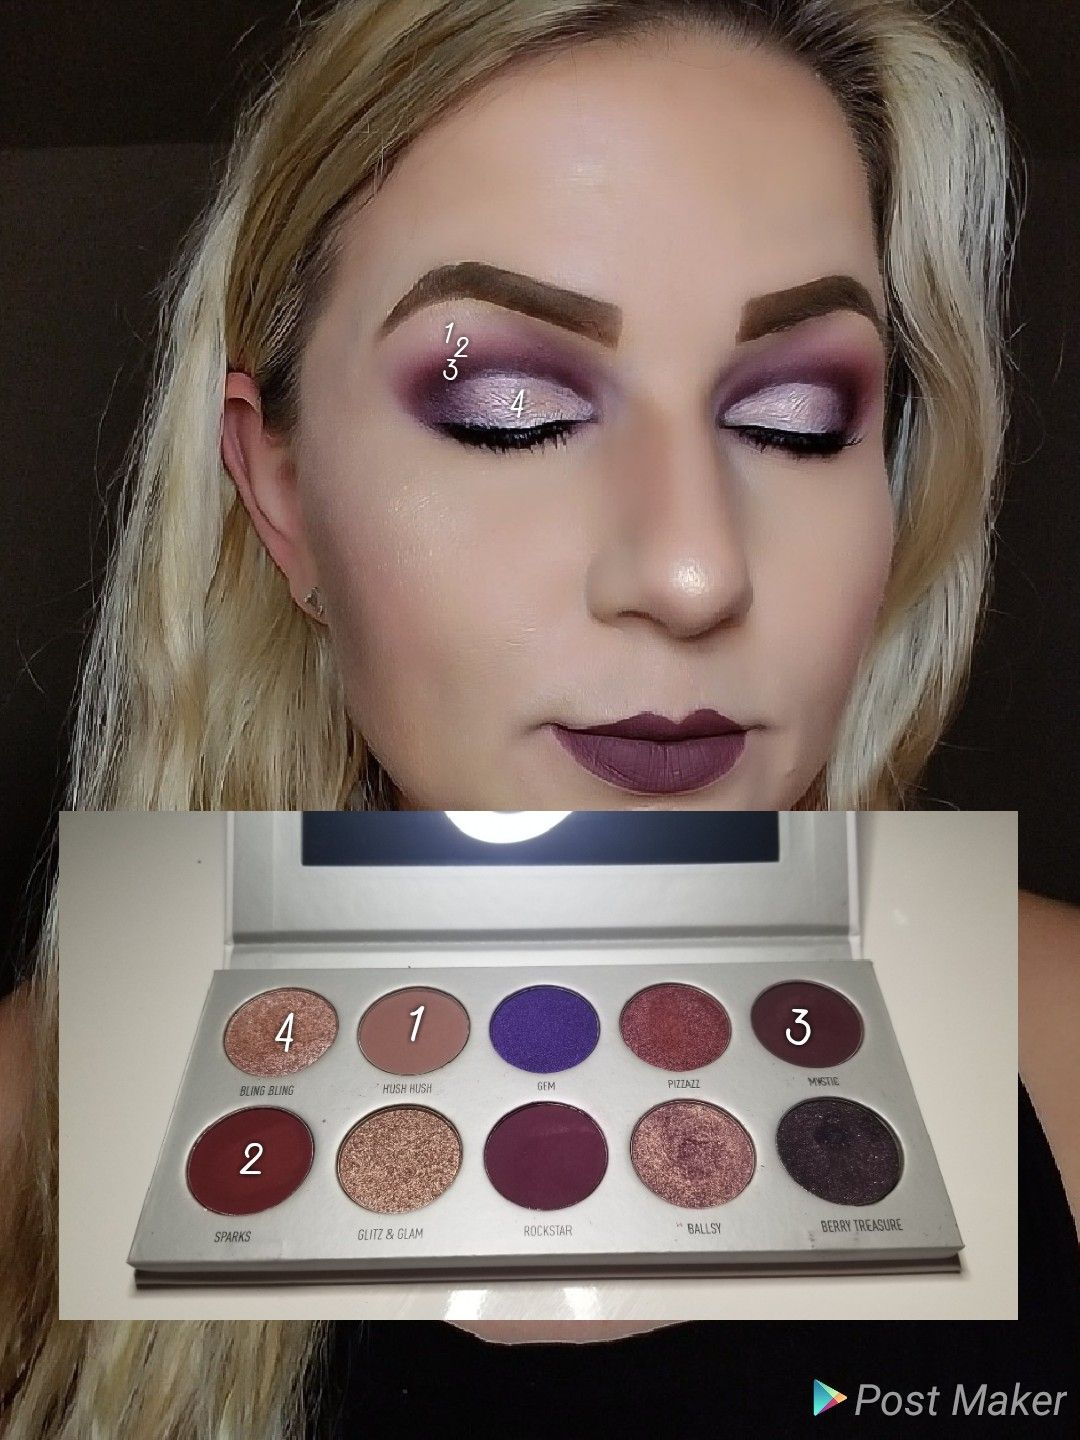 79bfdad3a7c Jaclyns Vault Bling Boss Palette | Makeup By Numbers in 2019 ...